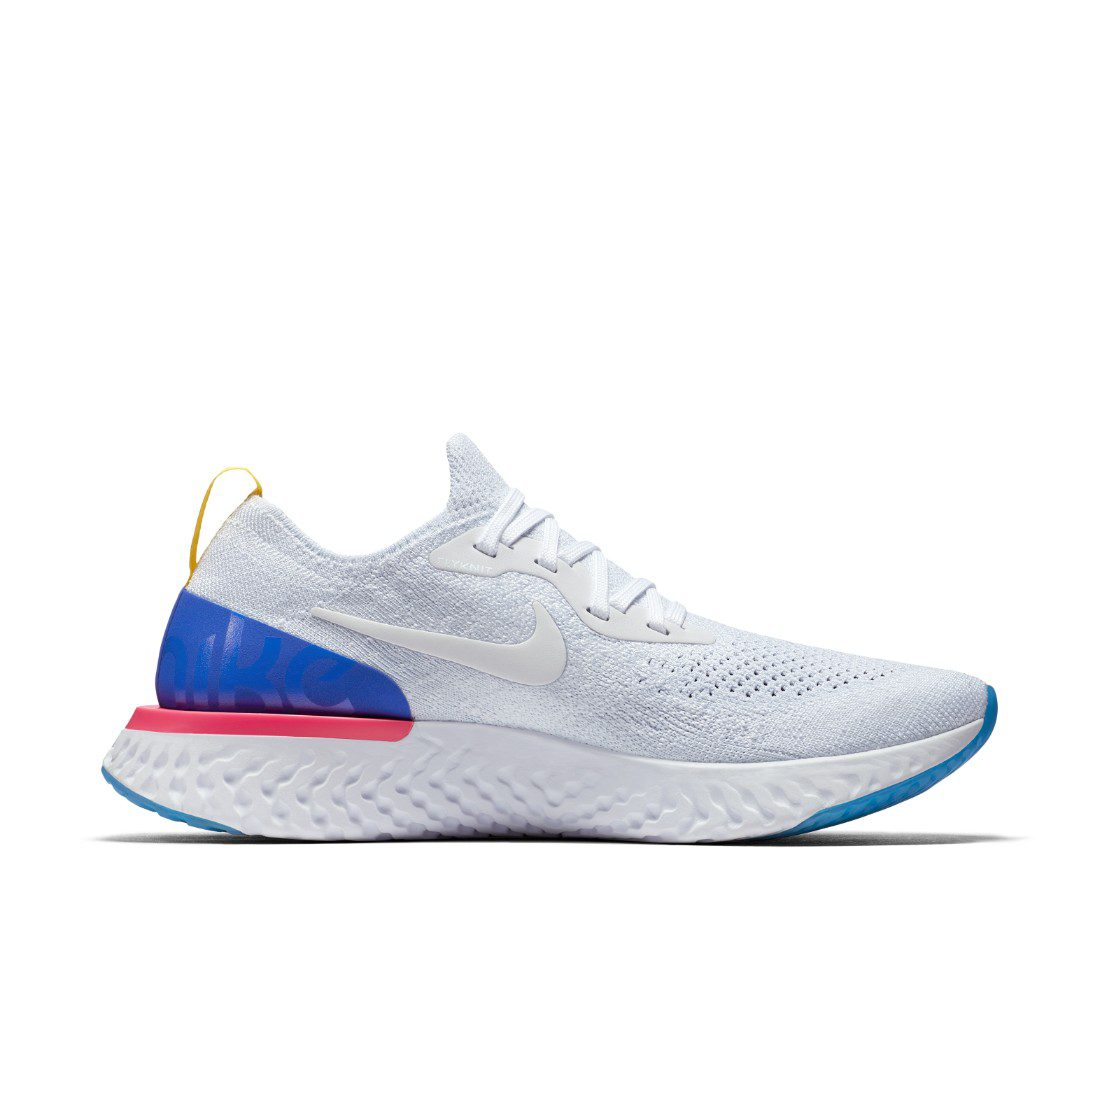 What Nike Shoes Have Good Arch Support